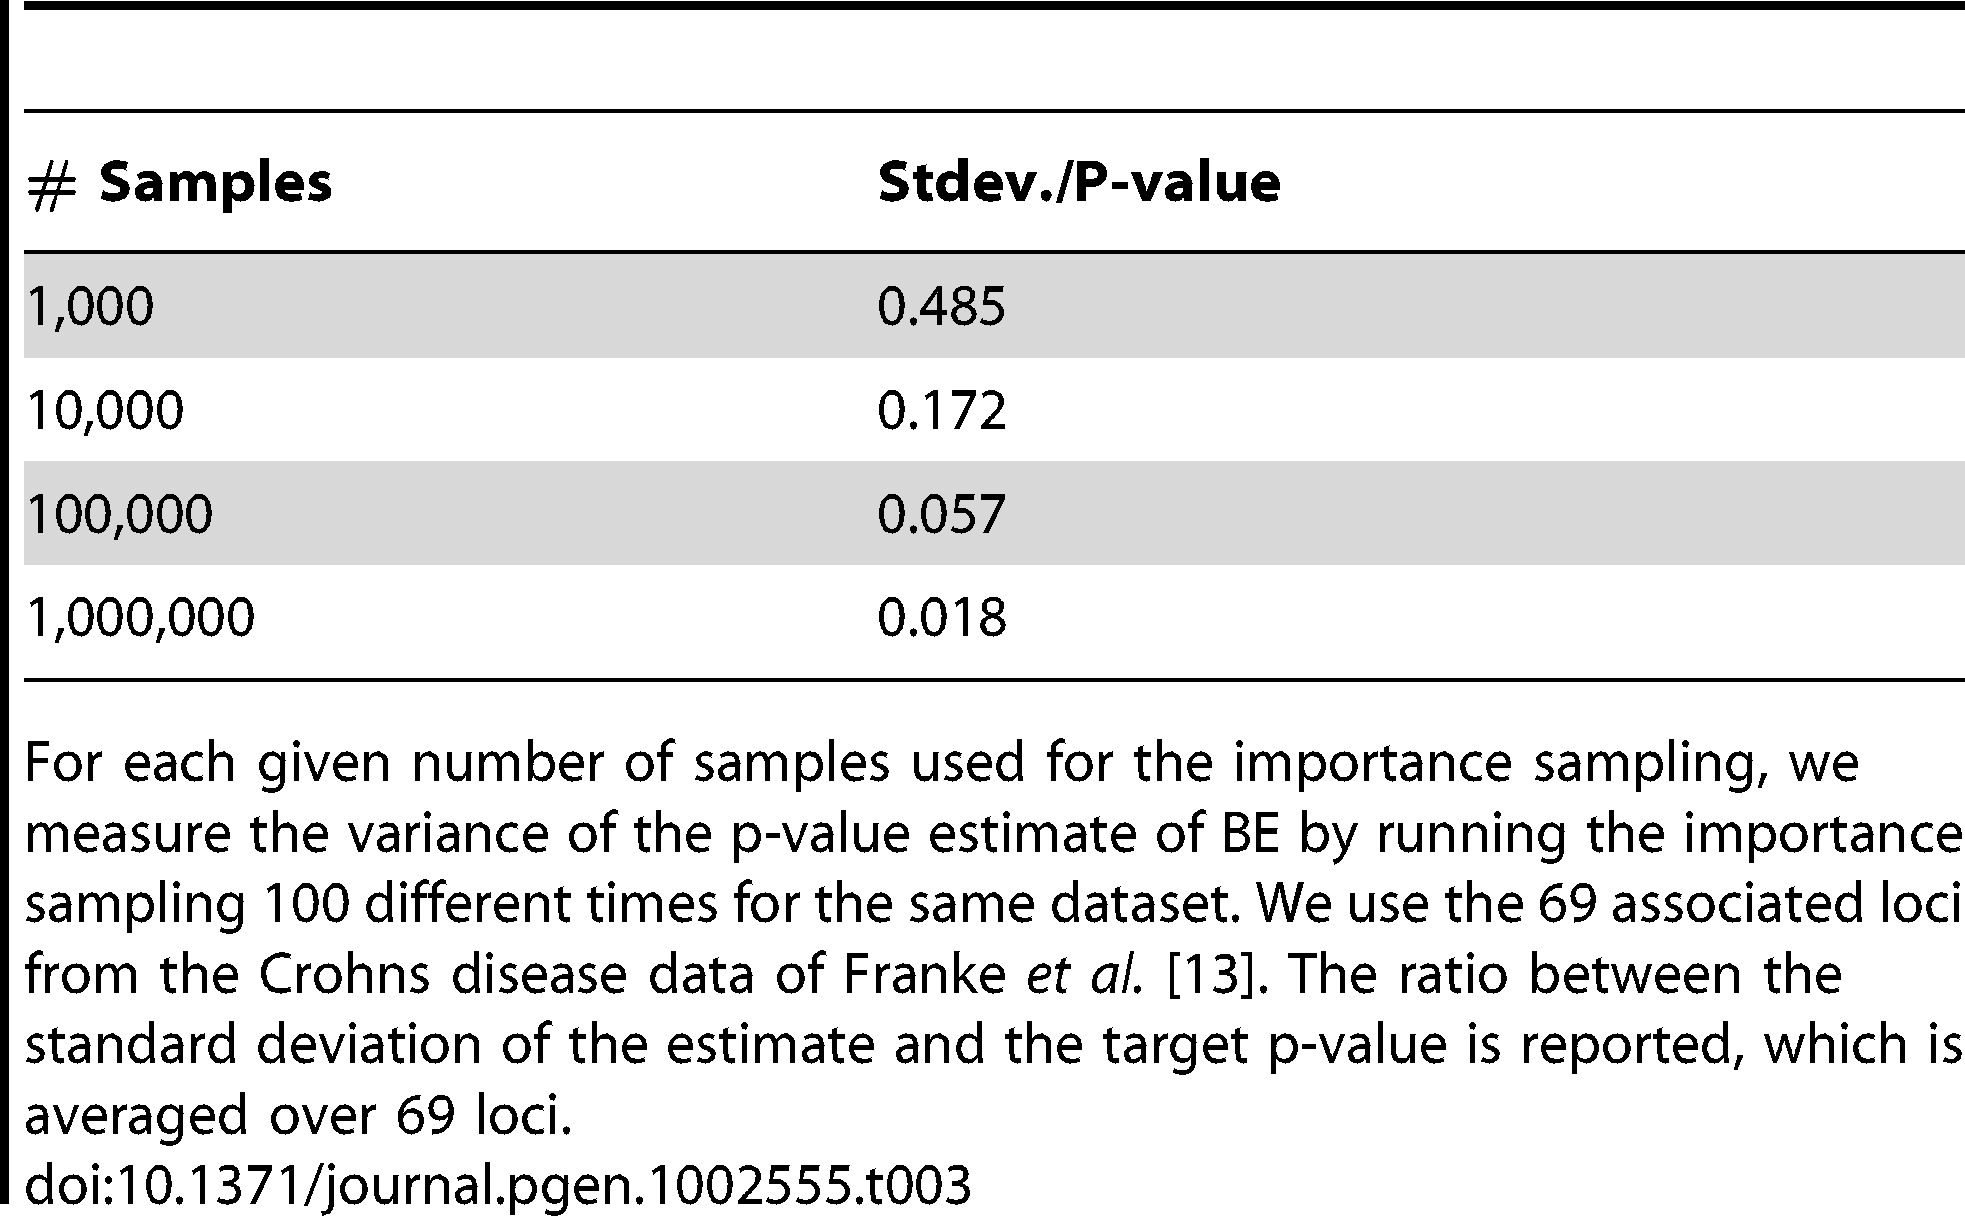 Accuracy of importance sampling depending on the number of samples.